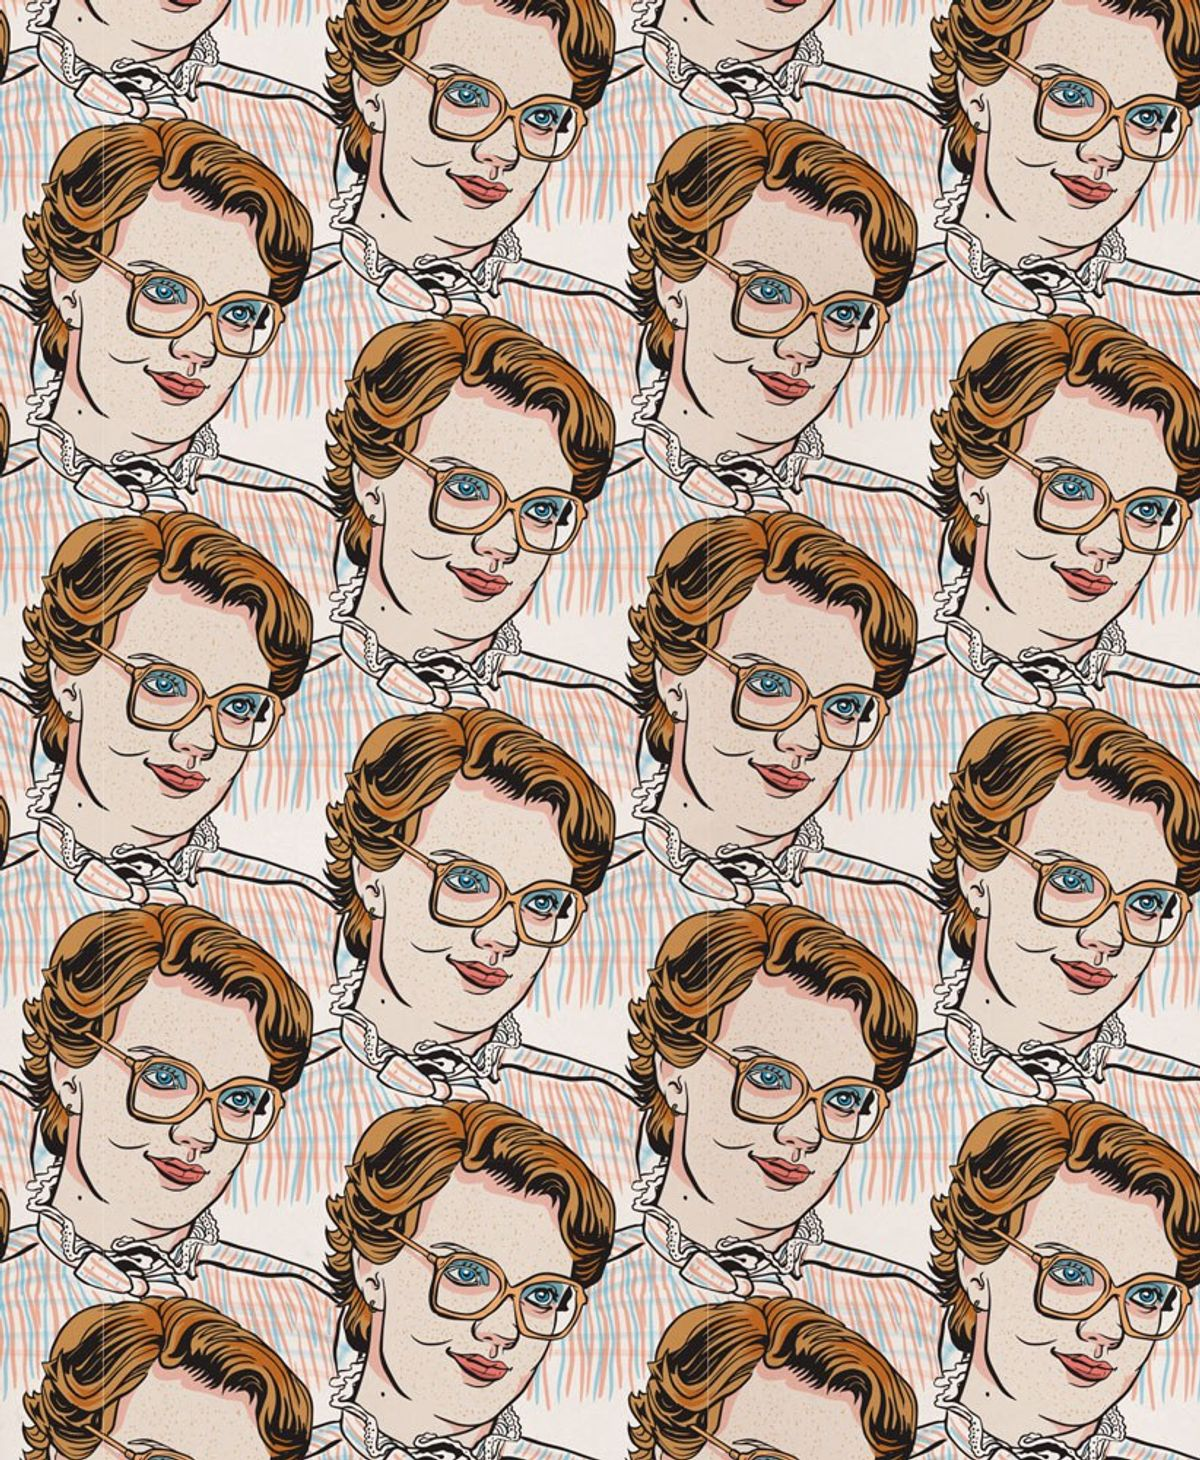 Why Barb Deserved Better